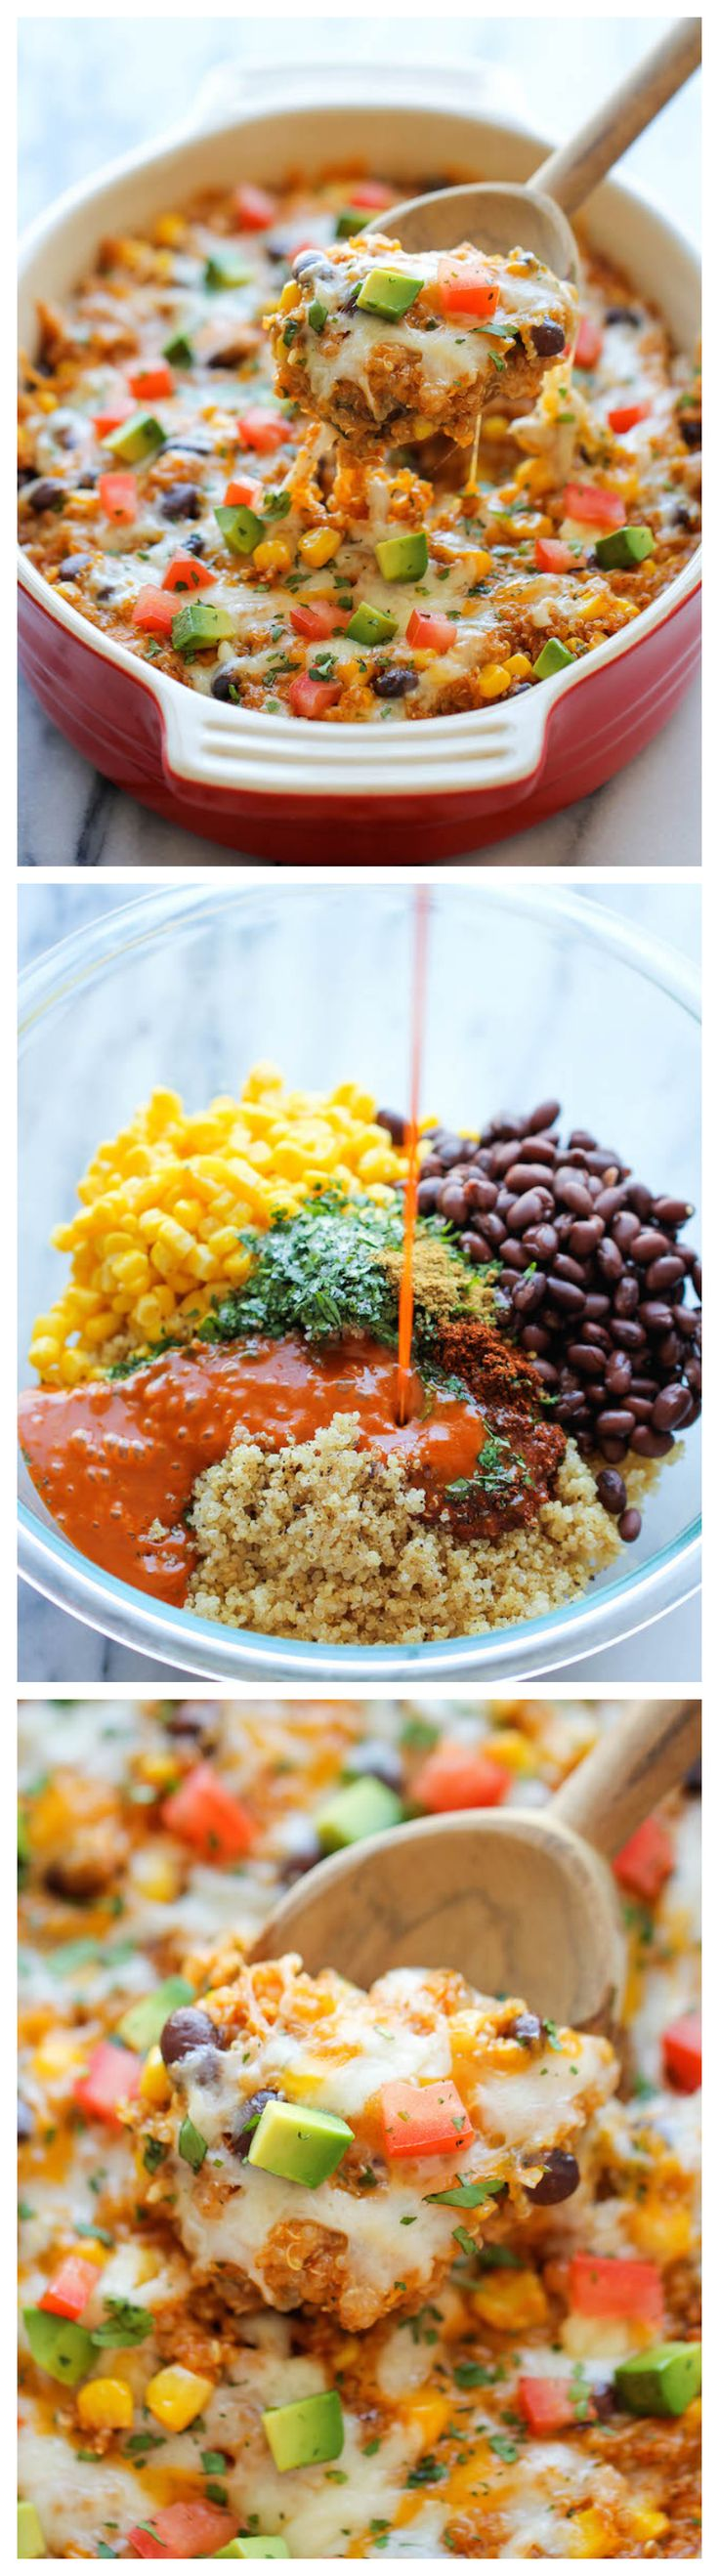 Quinoa Enchilada Casserole - A lightened-up, healthy enchilada bake full of quinoa, black beans and cheese